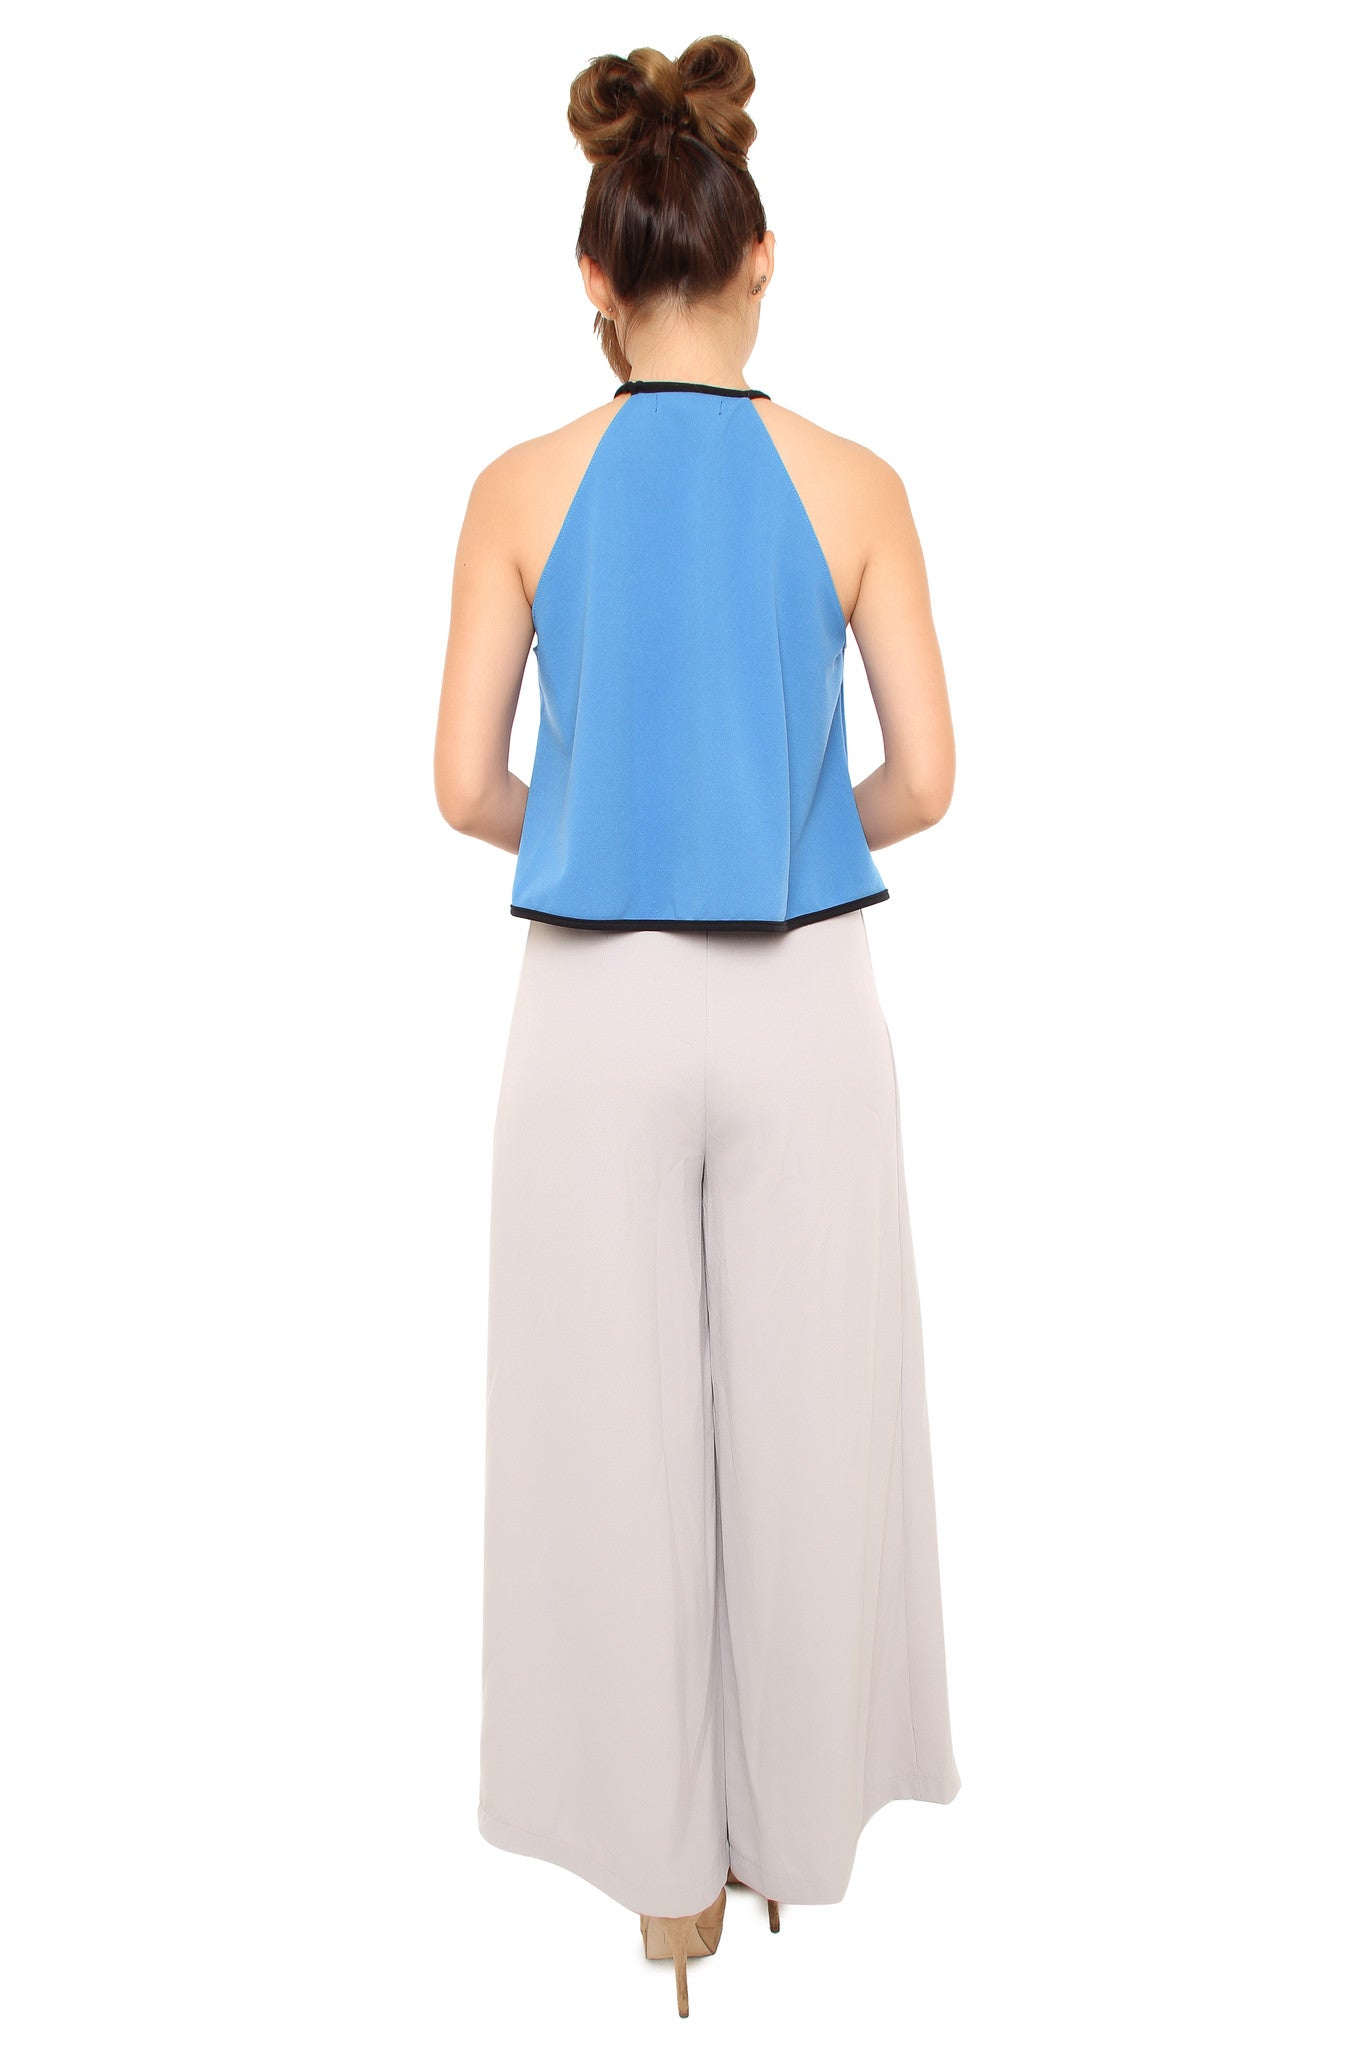 Alba Top - Palace Blue